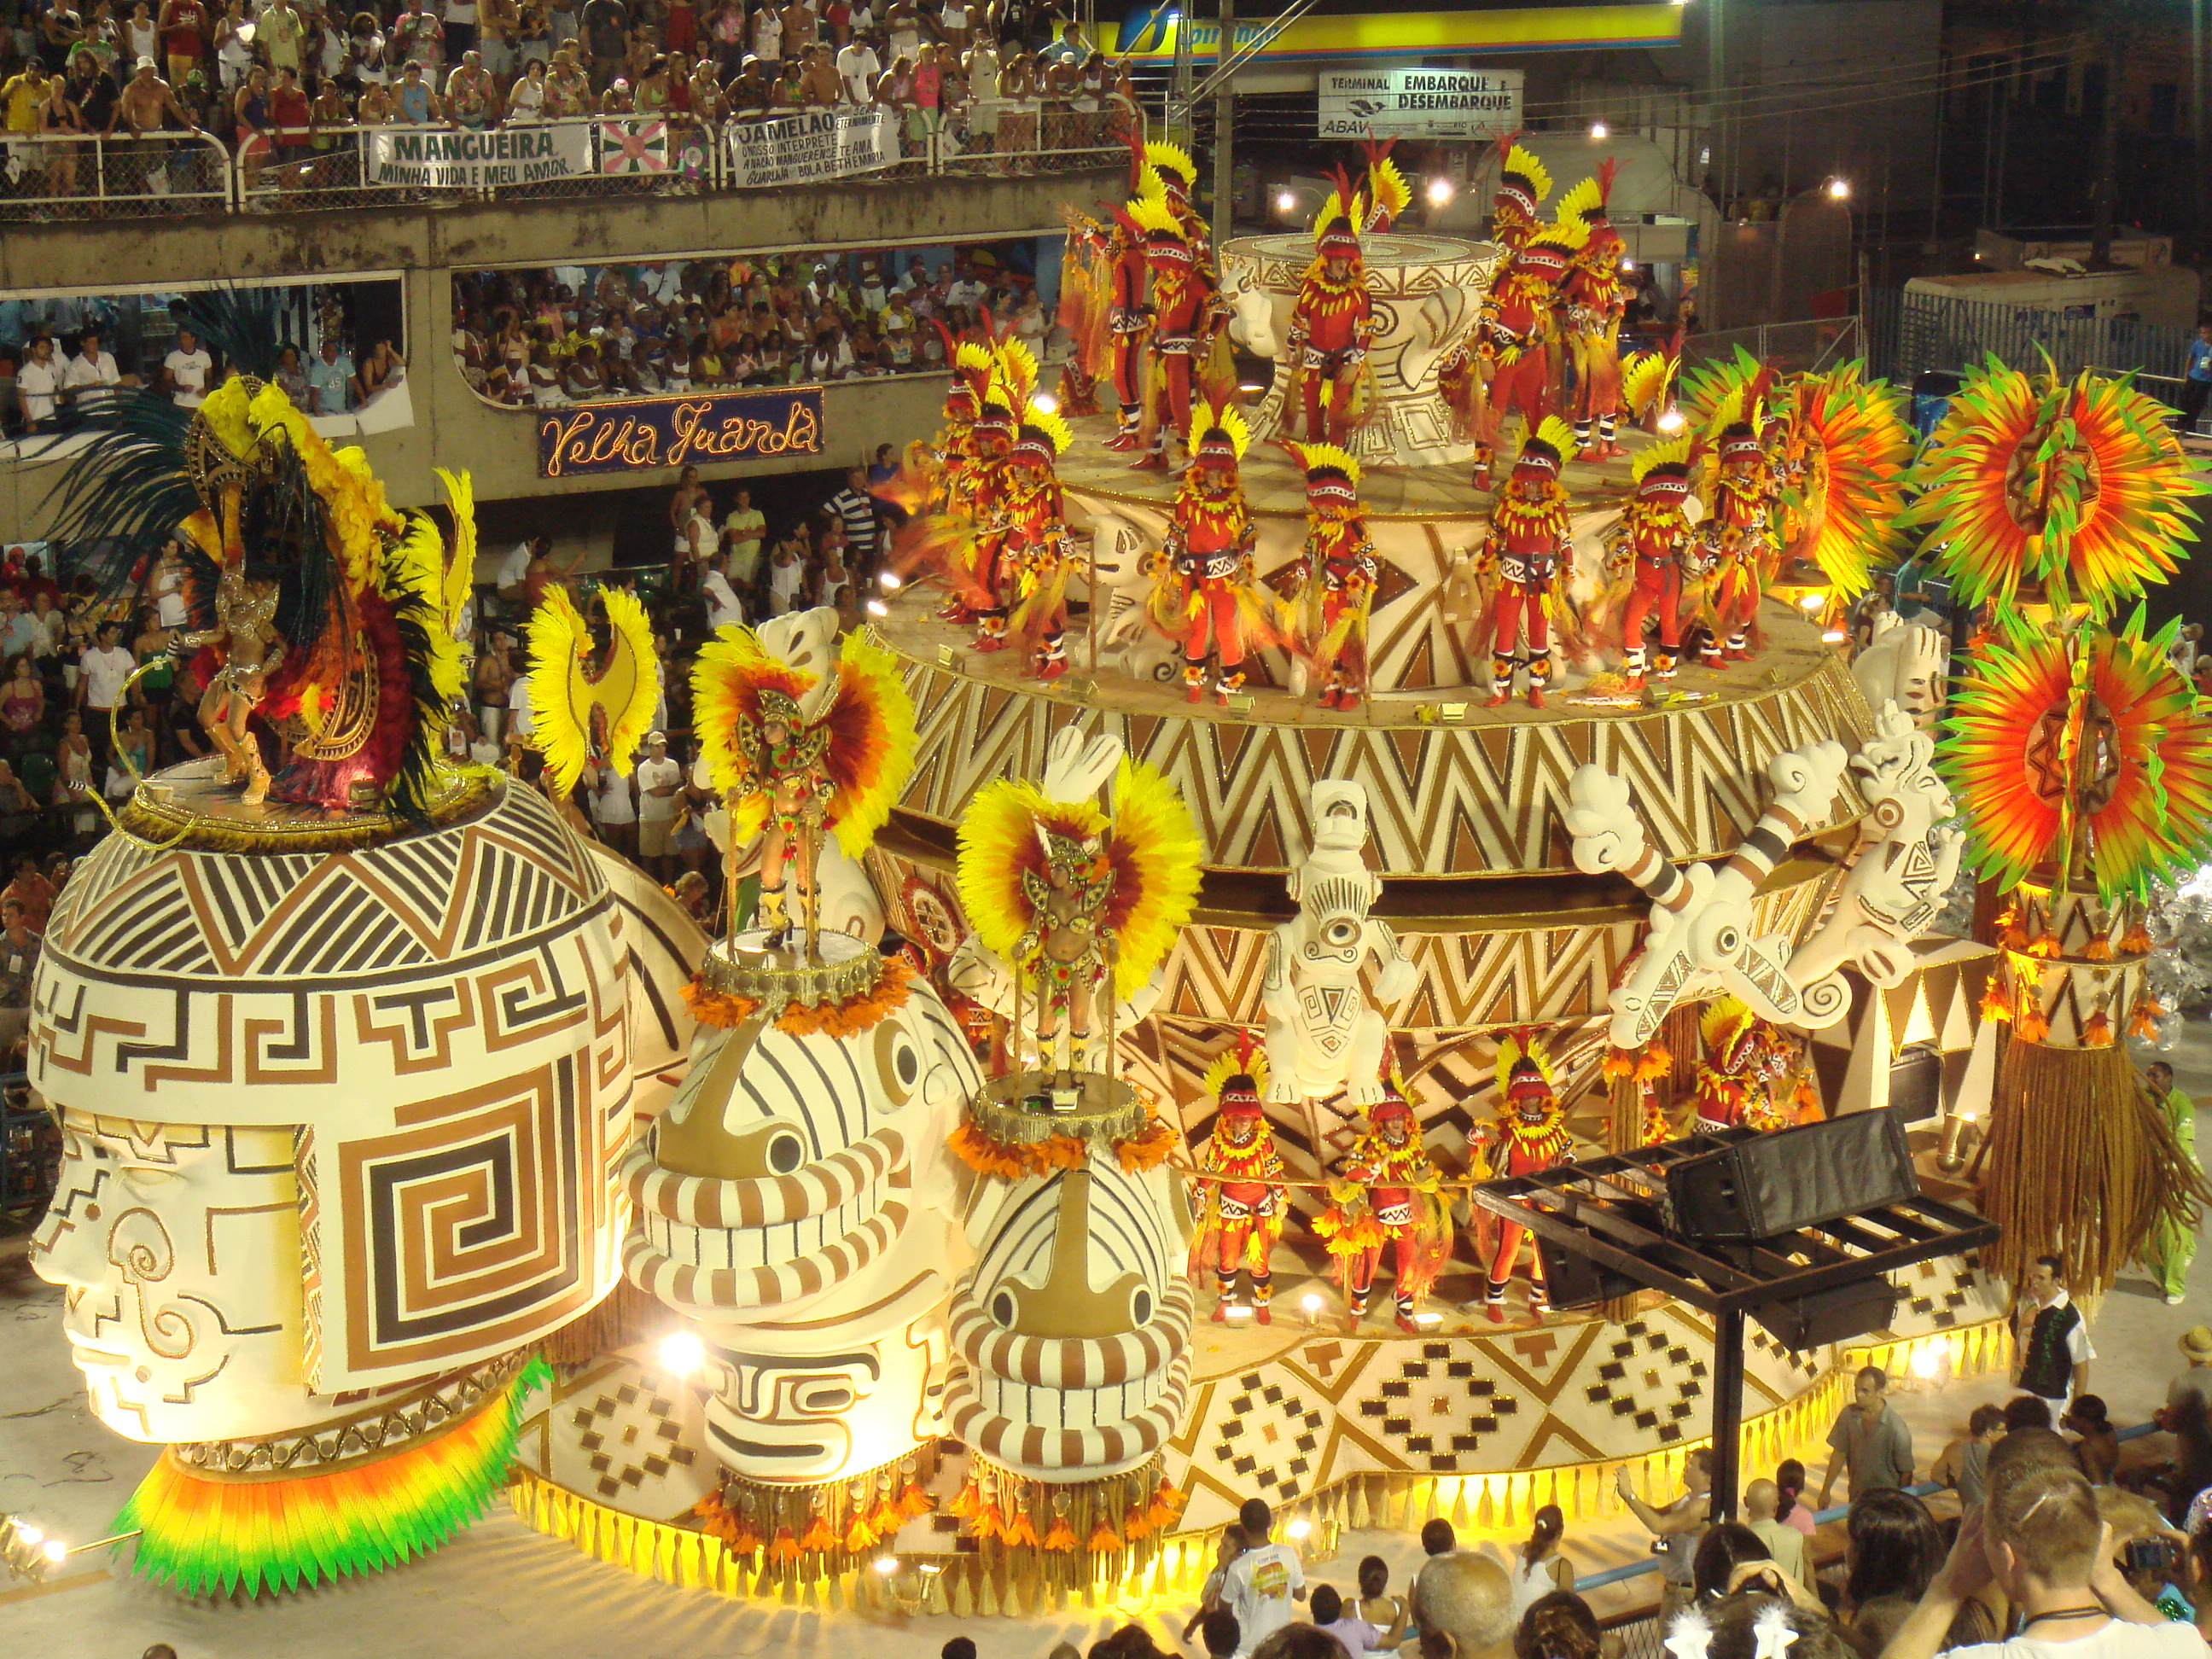 Carnaval Rio Wikimedia Commons